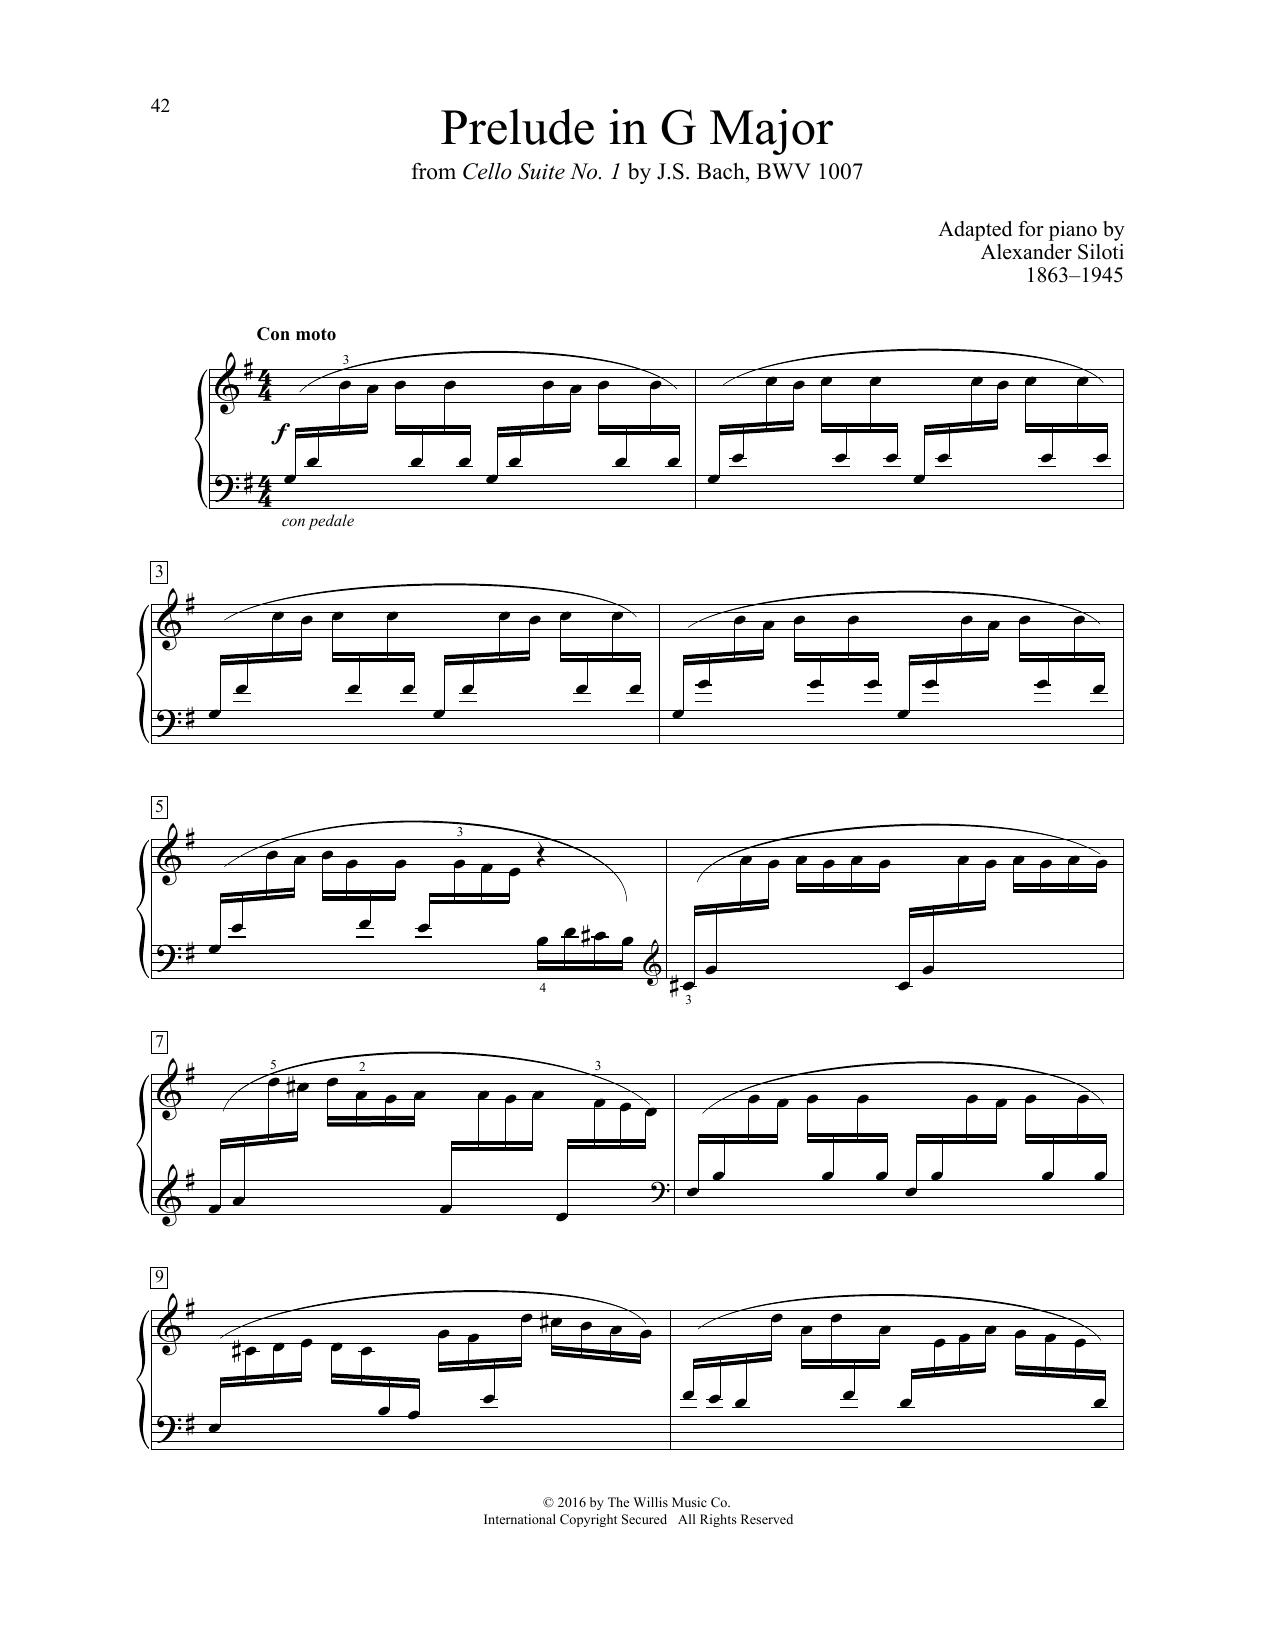 Alexander Siloti Prelude In G Major sheet music notes and chords. Download Printable PDF.